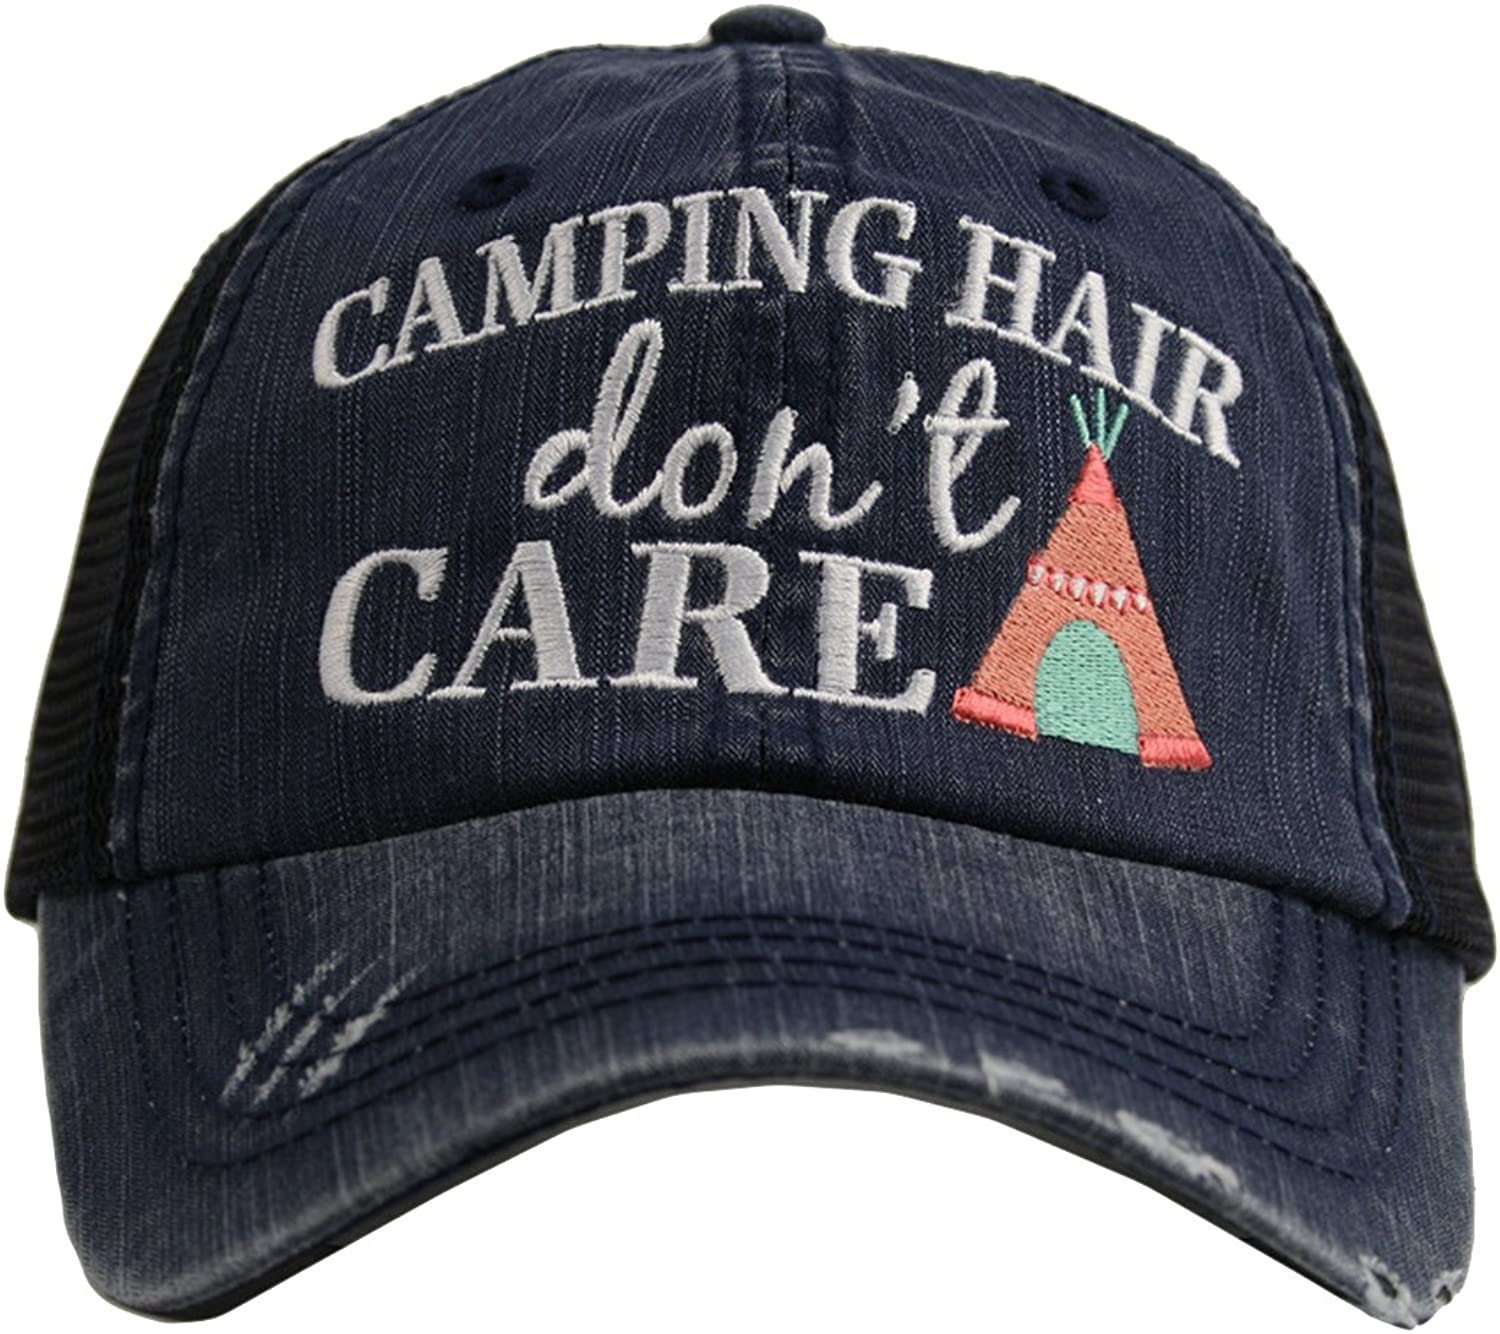 Embroidered Camping Hair Don't Care Vintage Style Grey Trucker Cap Hat